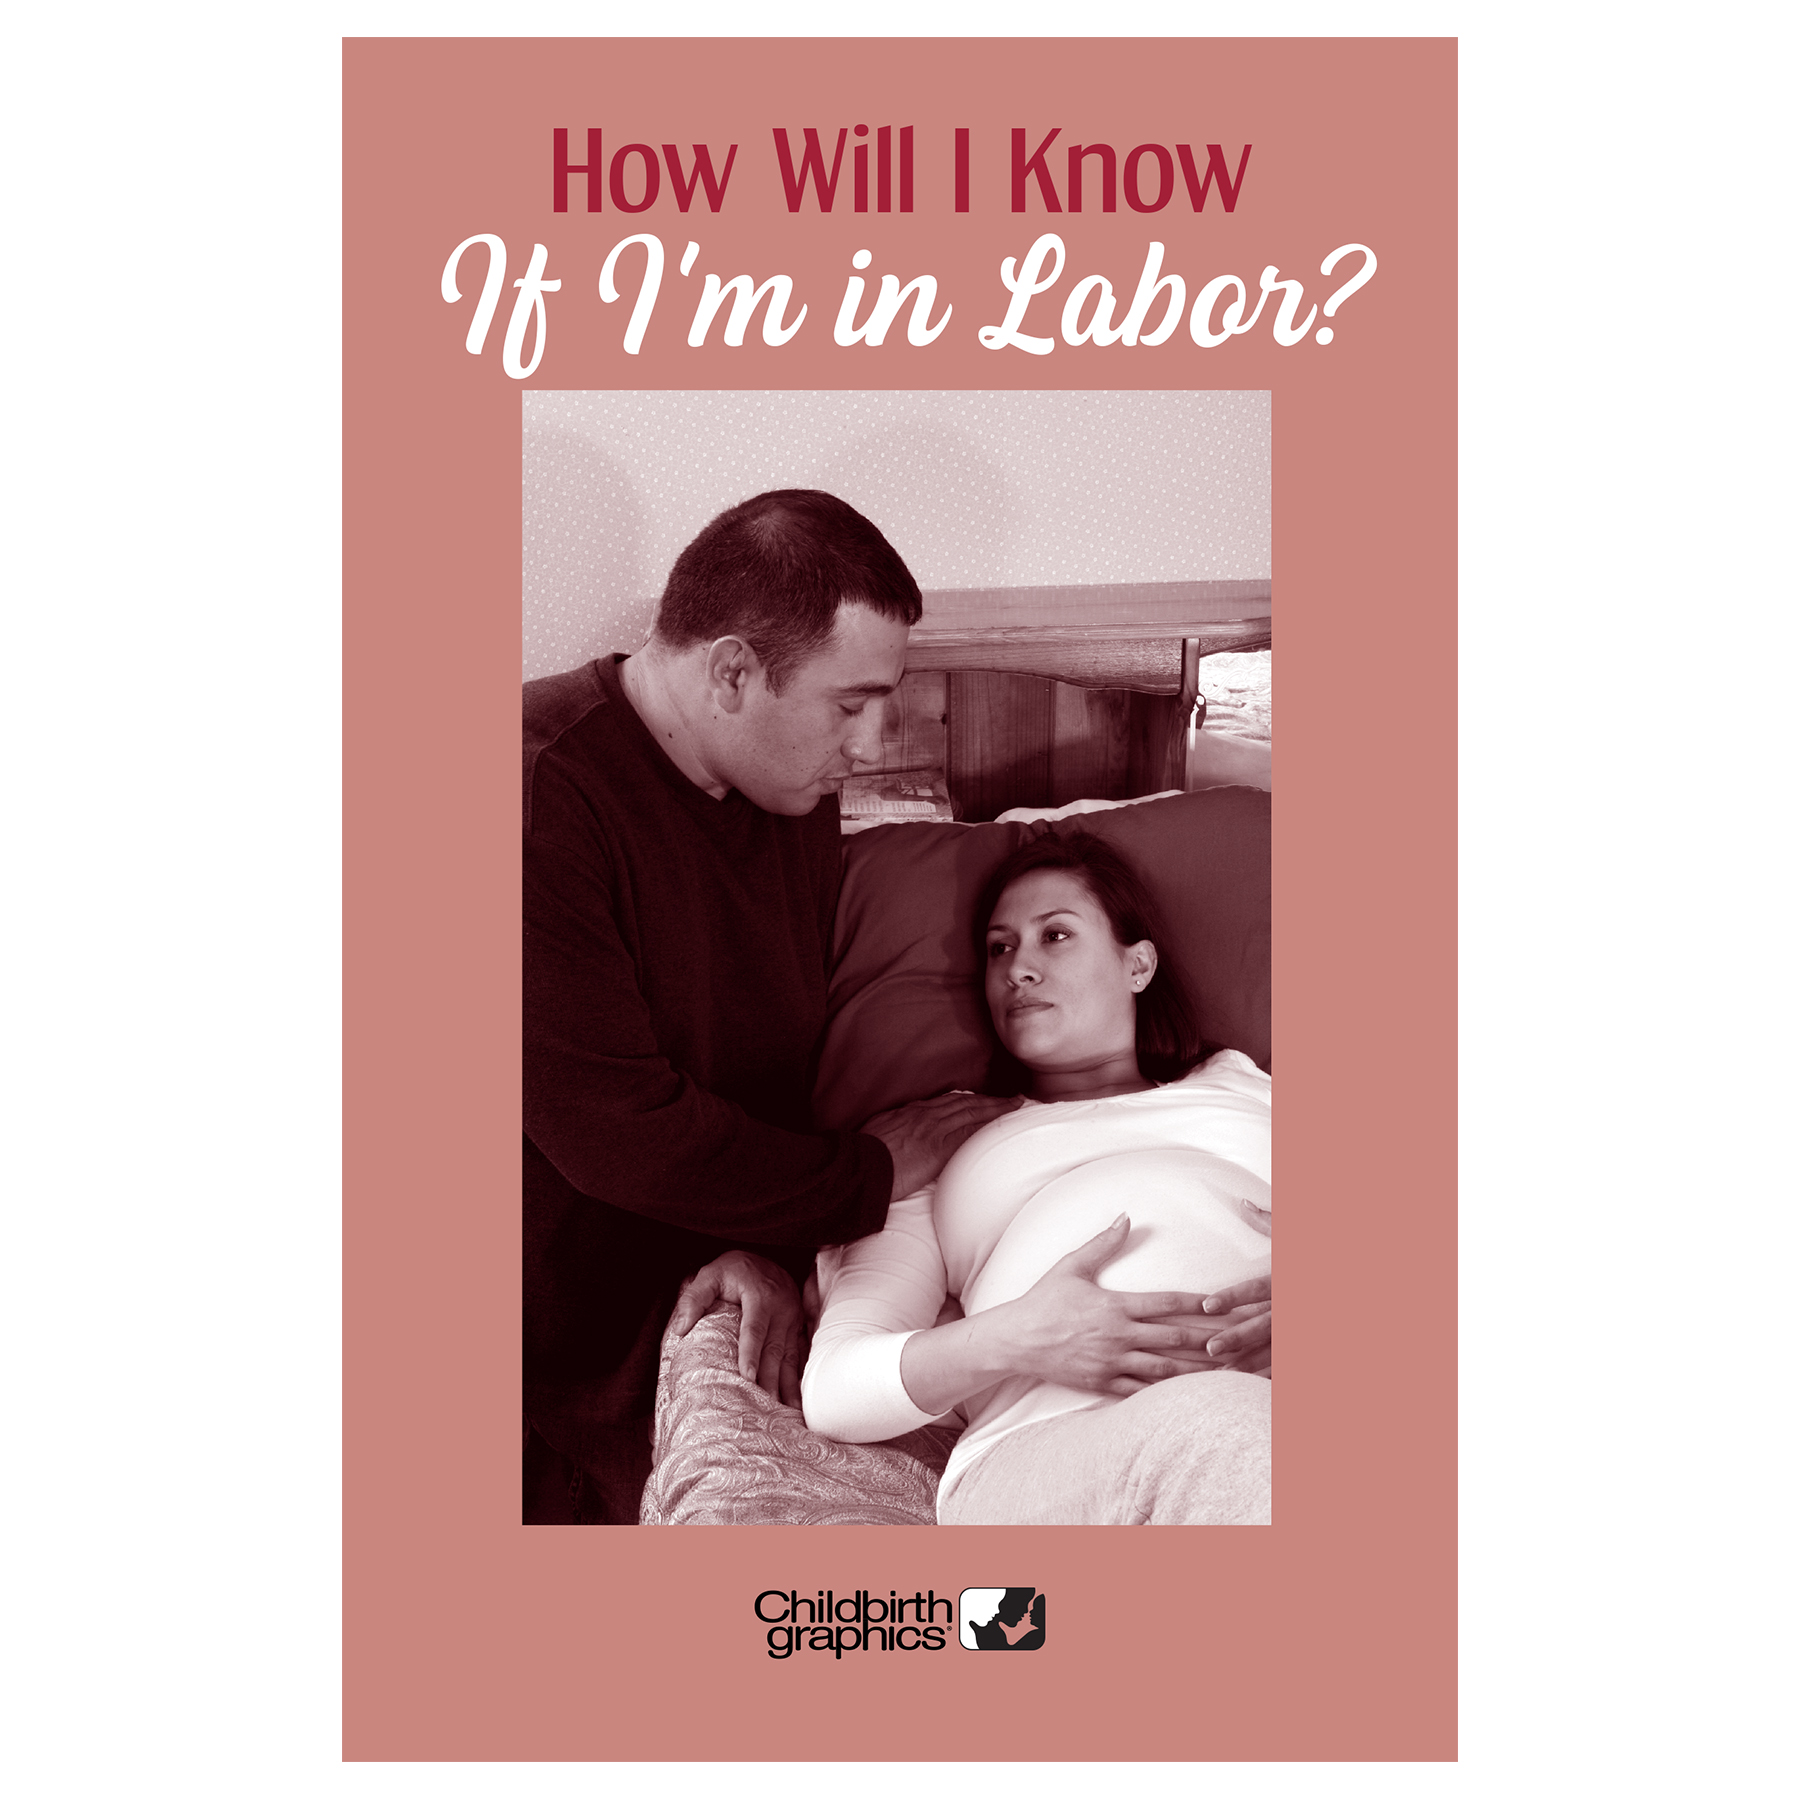 How will I know If I'm in labor booklet, two-color booklet cover with Hispanic couple shown, Childbirth Graphics, 38534